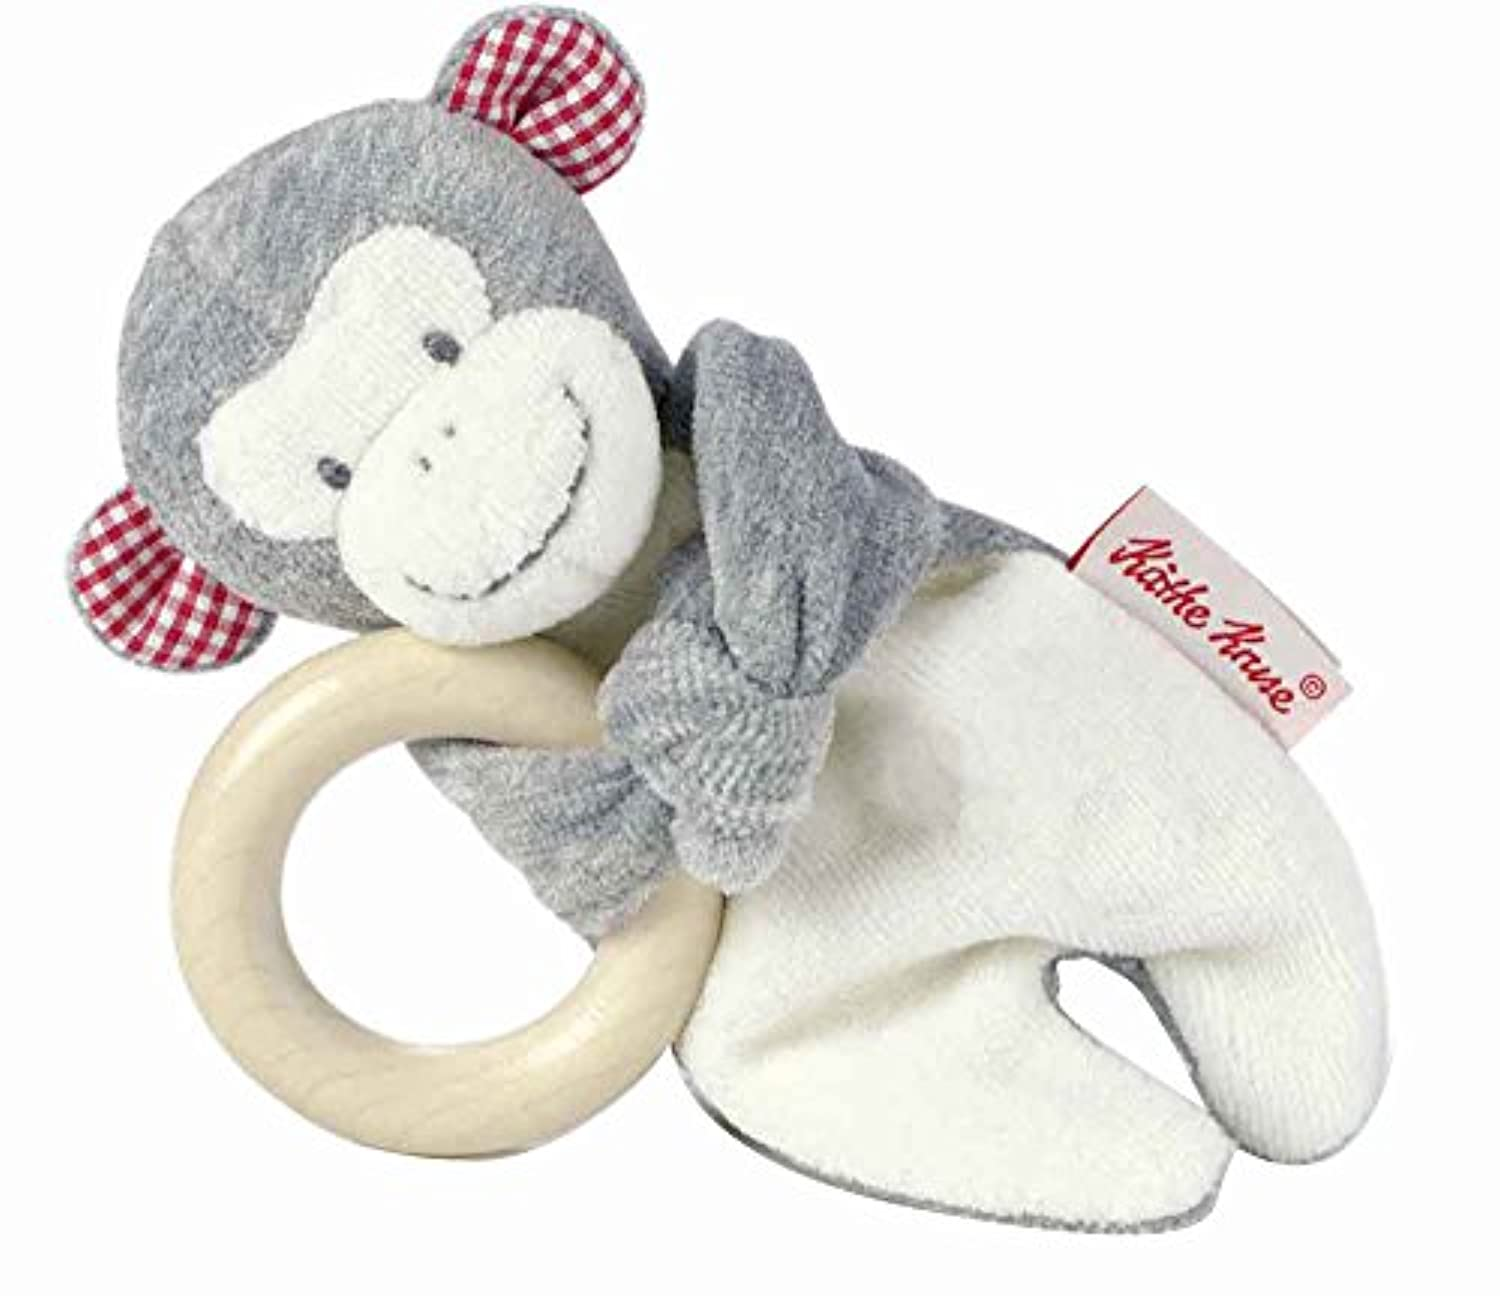 Kathe Kruse Newborn Baby Monkey Carlo Grabbing Toy with Woodenリング